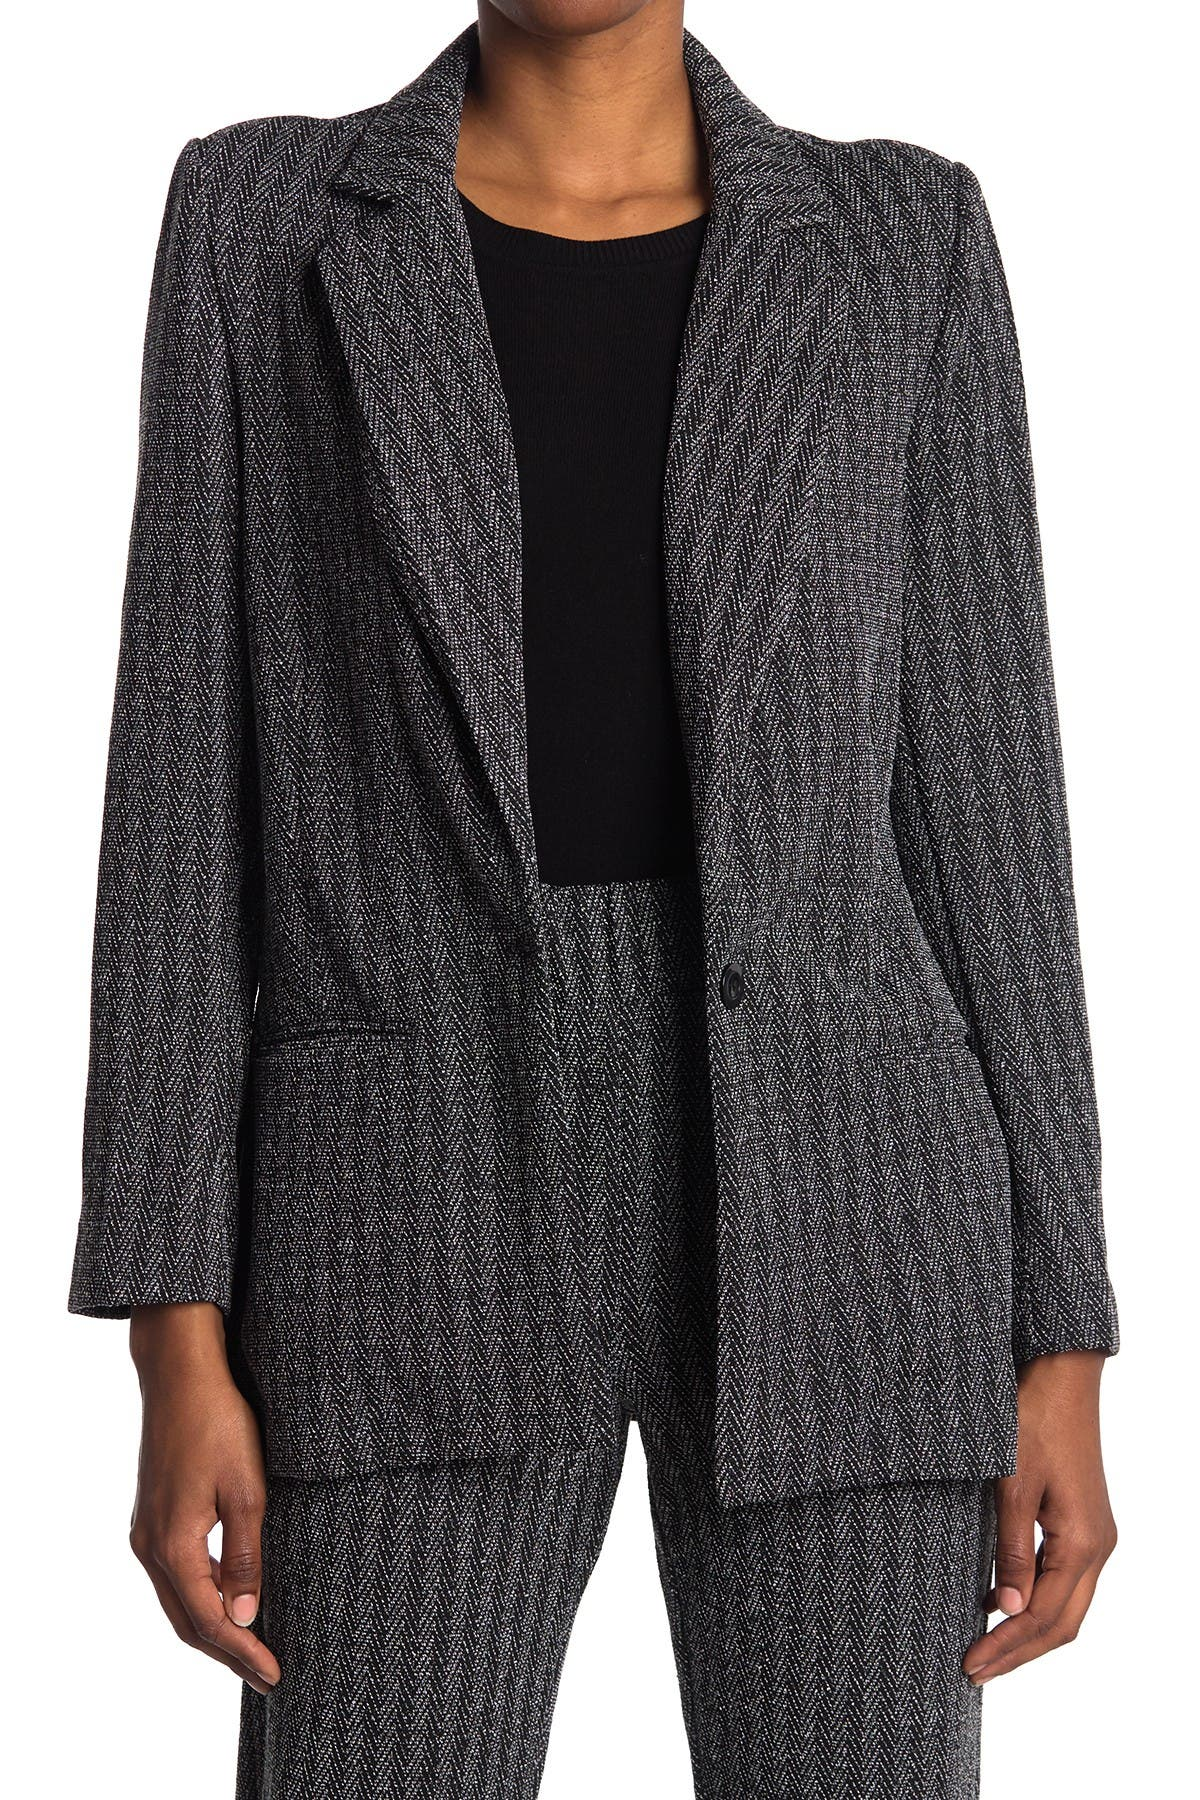 Image of Classe Couture Yarn Dye Blazer